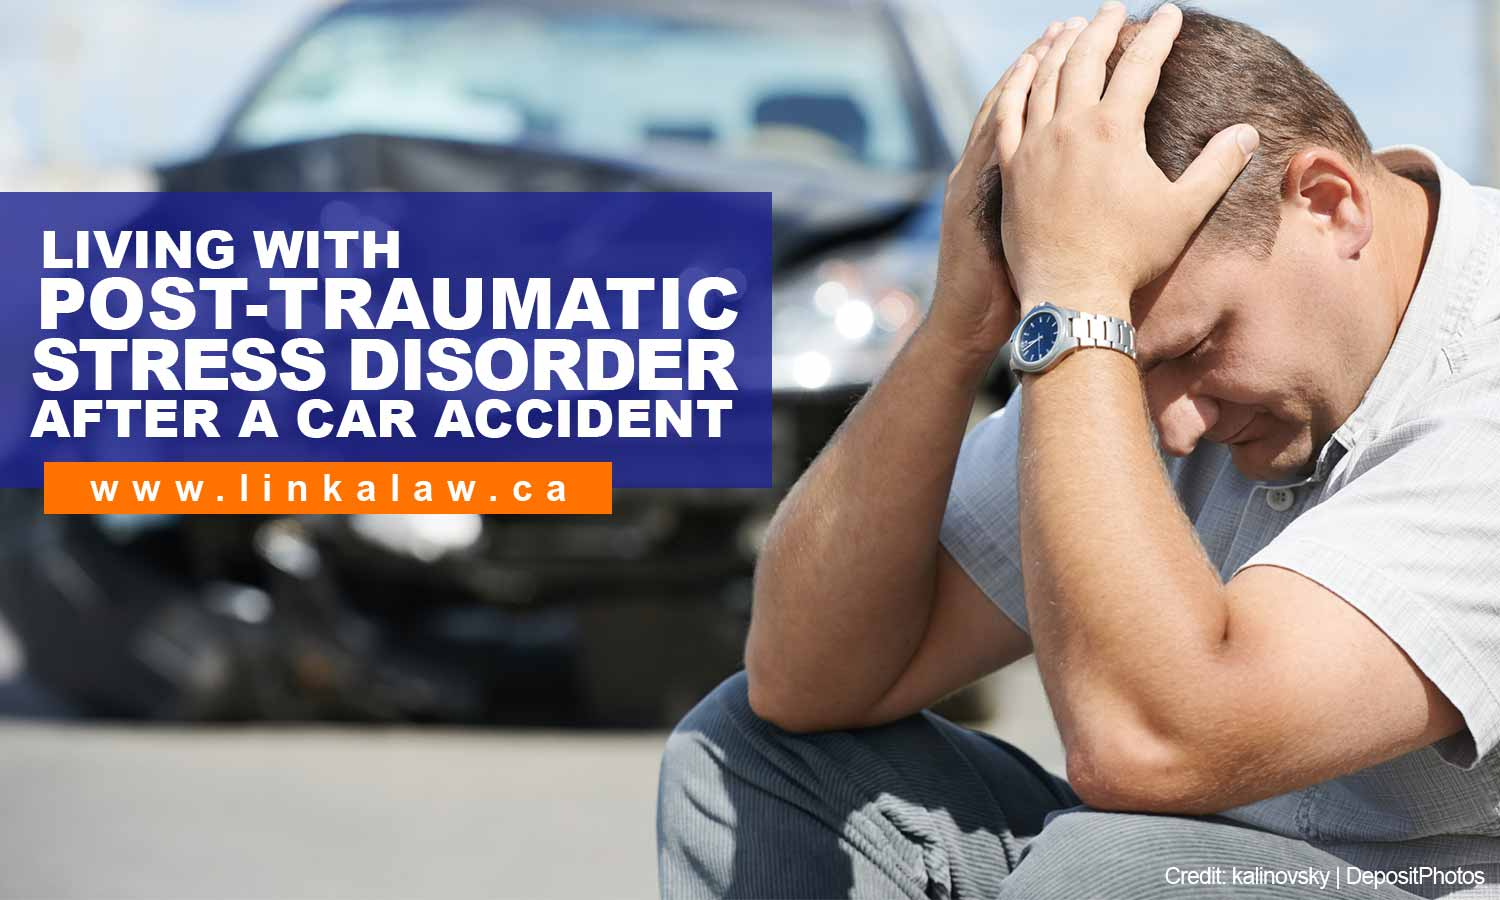 Living With Post-Traumatic Stress Disorder After a Car Accident